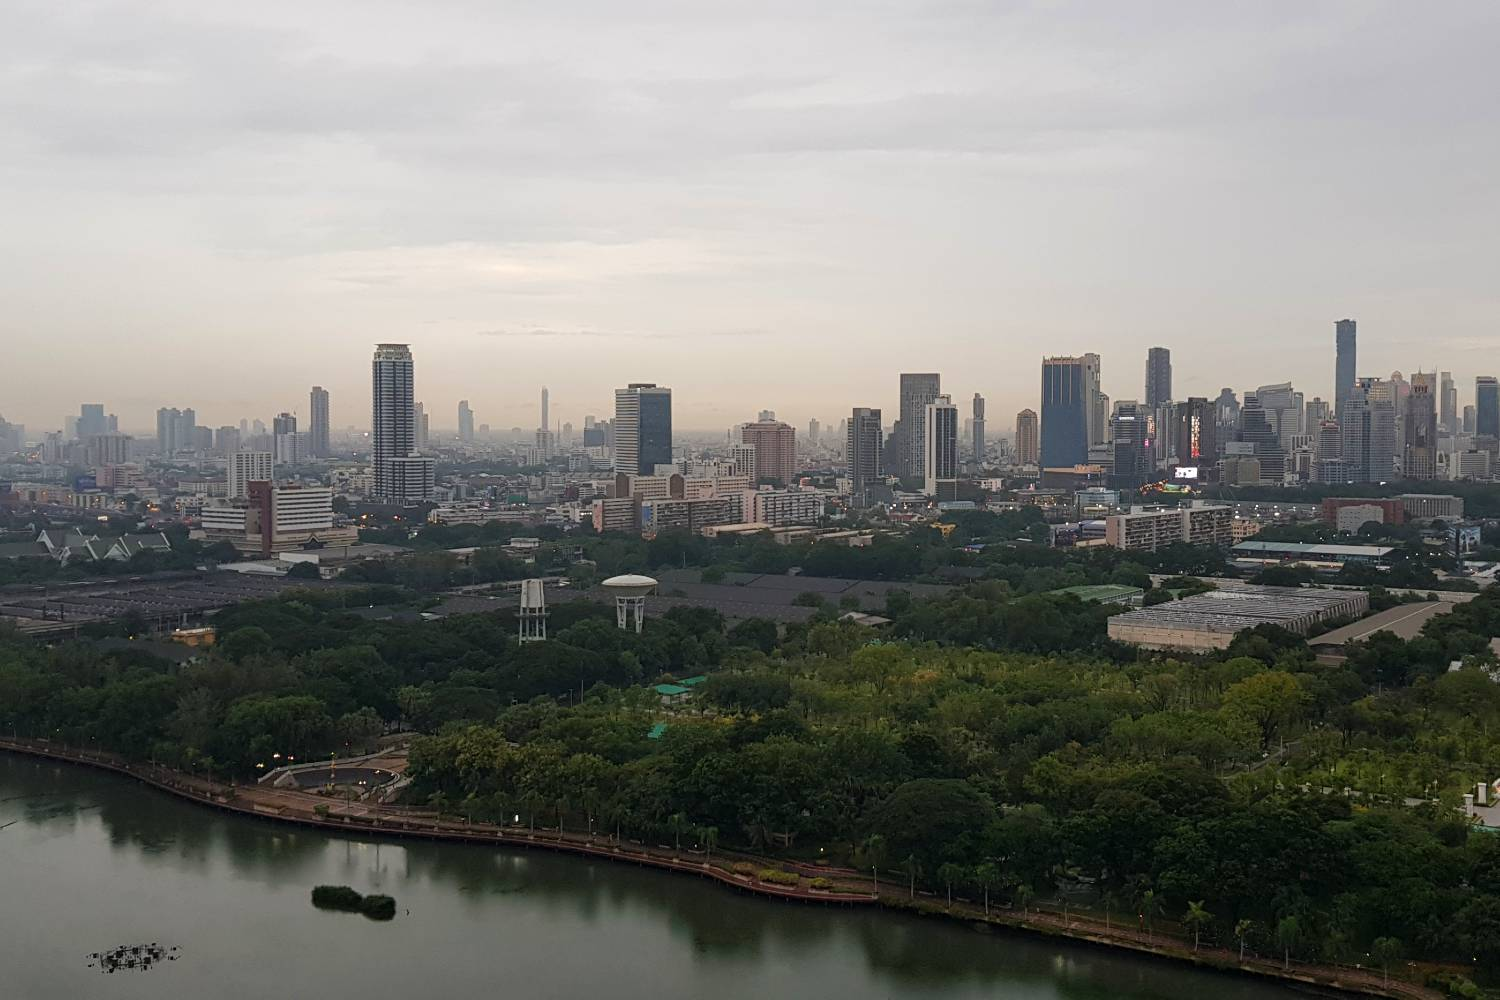 View from Long Table over the skyline of Bangkok with Lake Ratchada in Benjakiti Park in the foreground